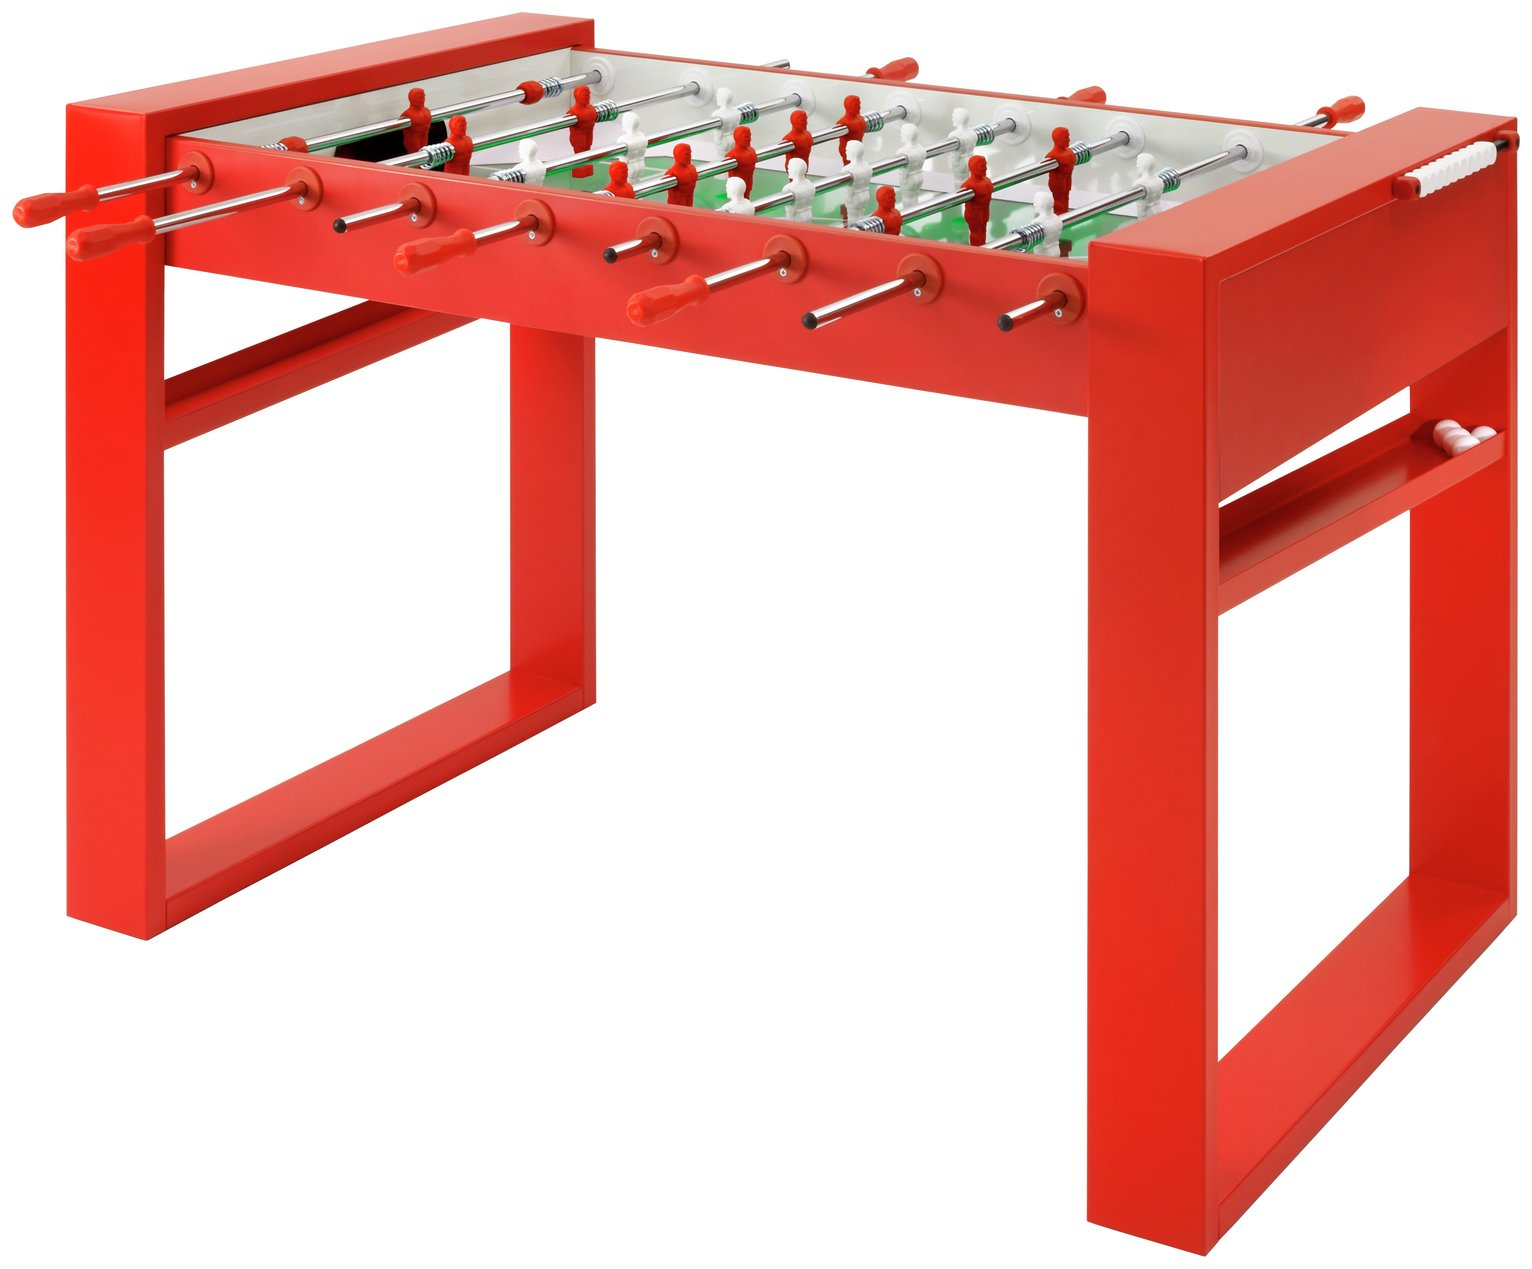 Mightymast Leisure Mightymast Red Tour Football Table